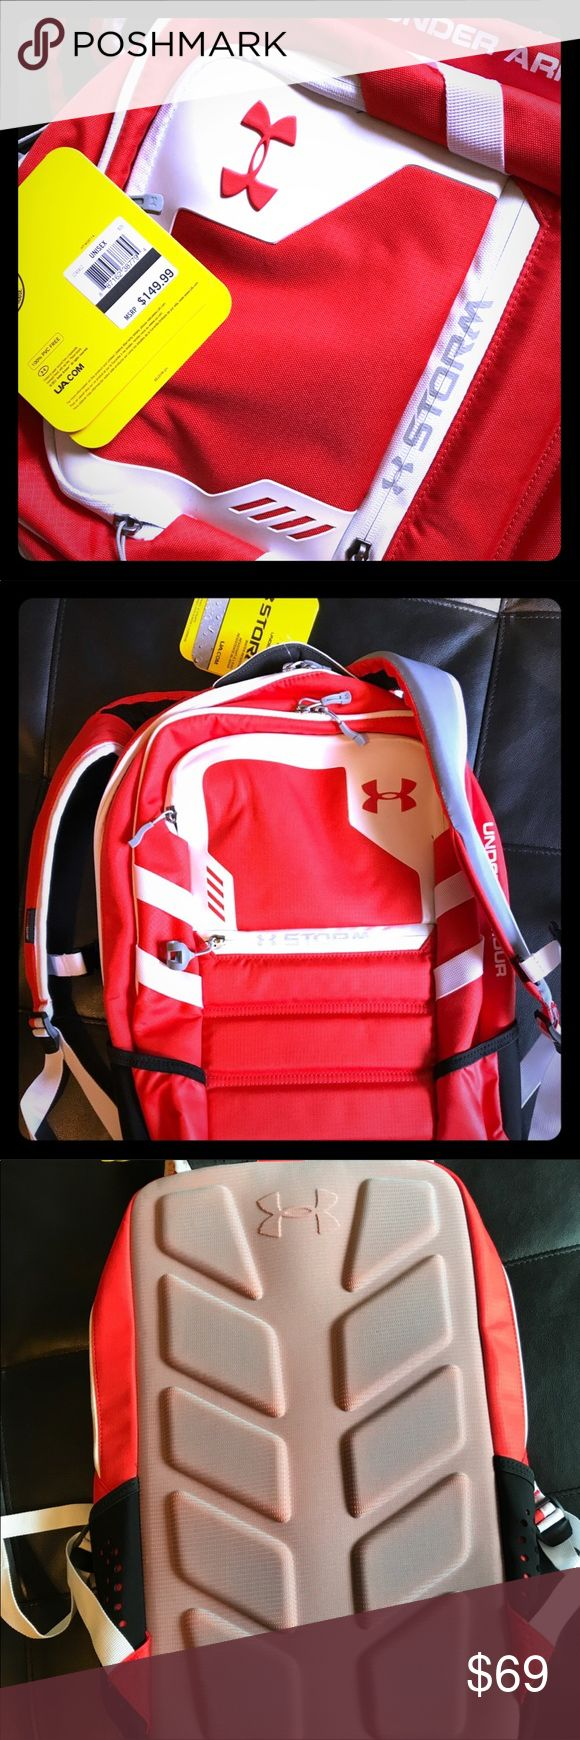 Under armor storm series backpack brand new w/tags Band new under armor backpack, new with tags, this is a nice bag! Half of retail price! Under Armour Bags Backpacks